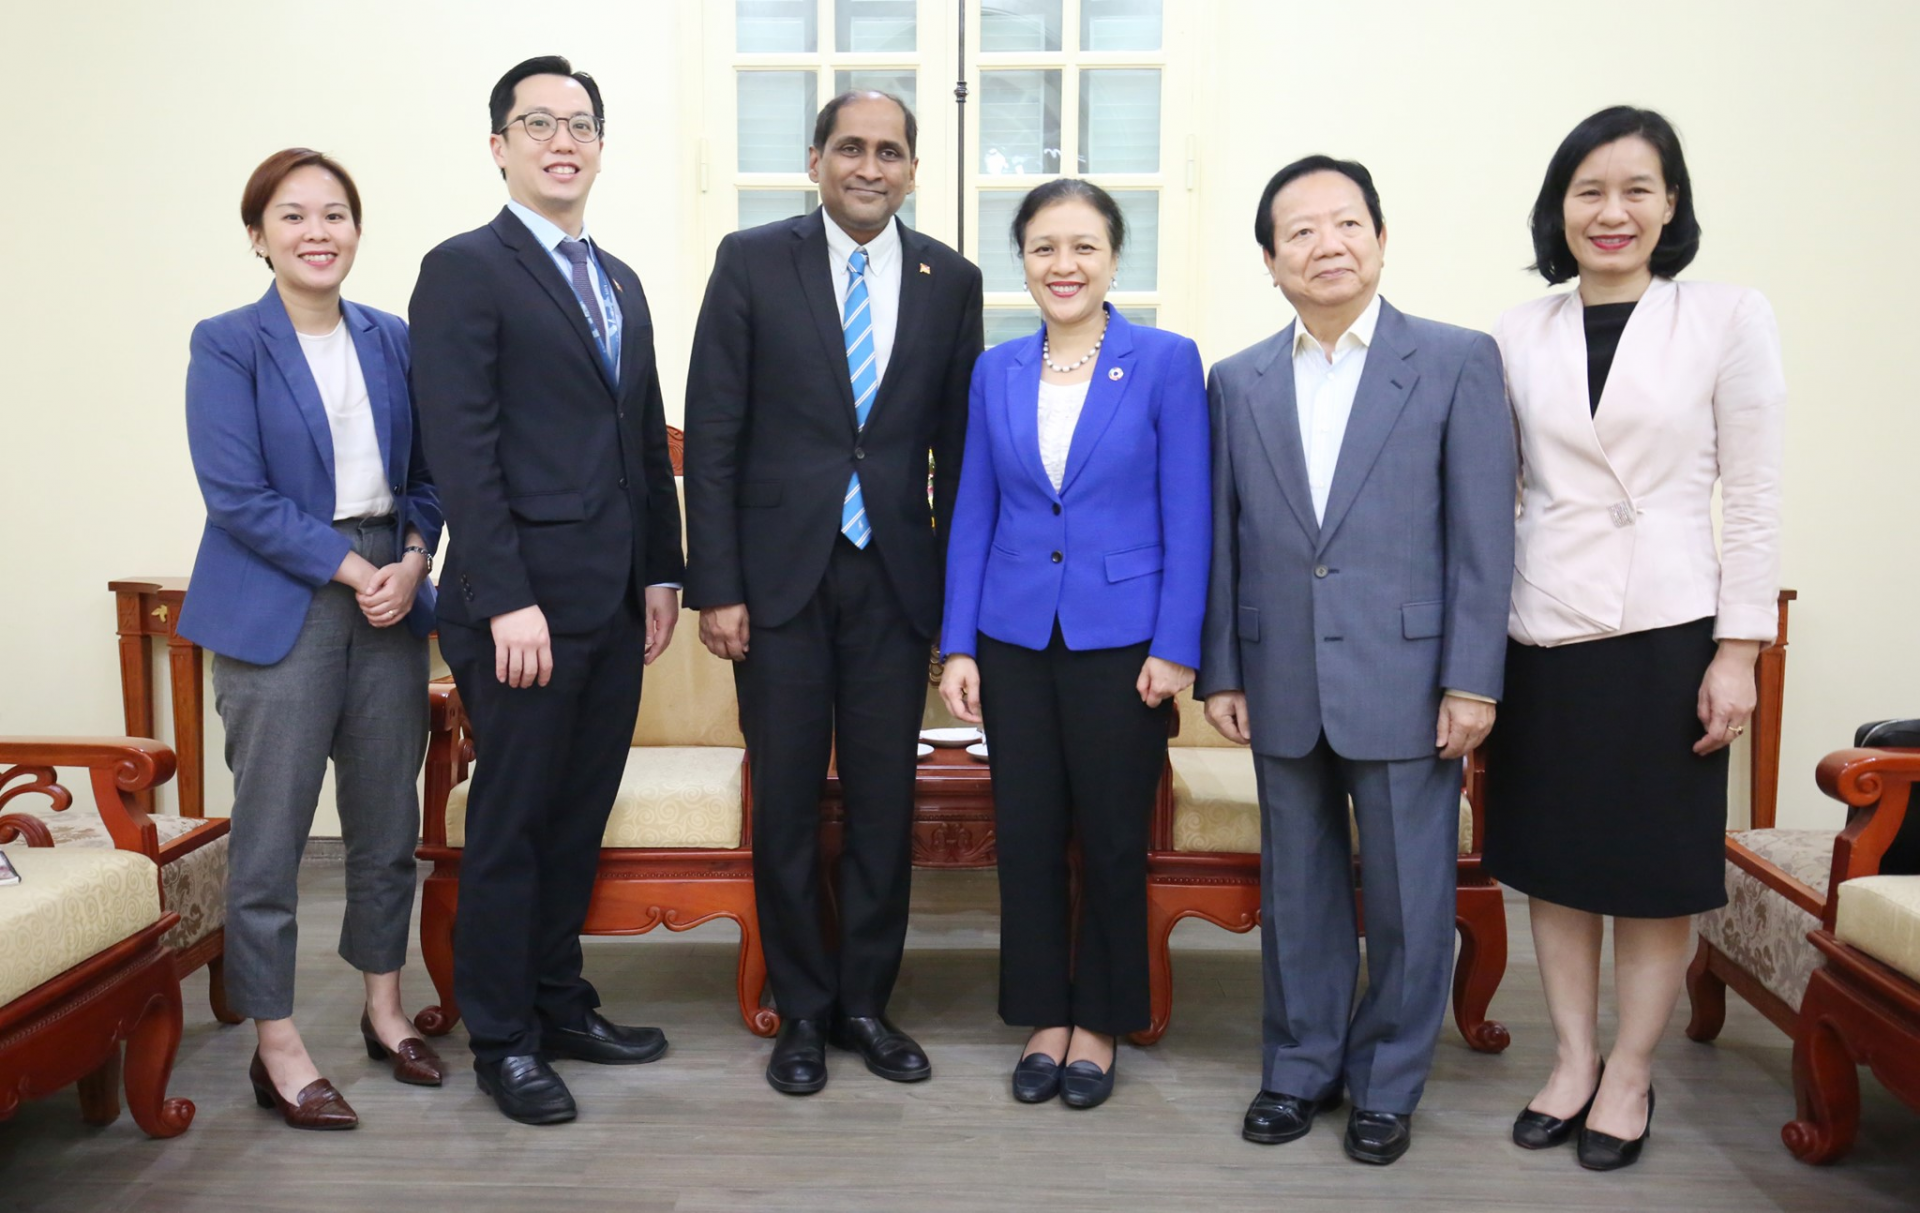 Newly appointed Singaporean Ambassador to pay a courtesy visit to the VUFO President